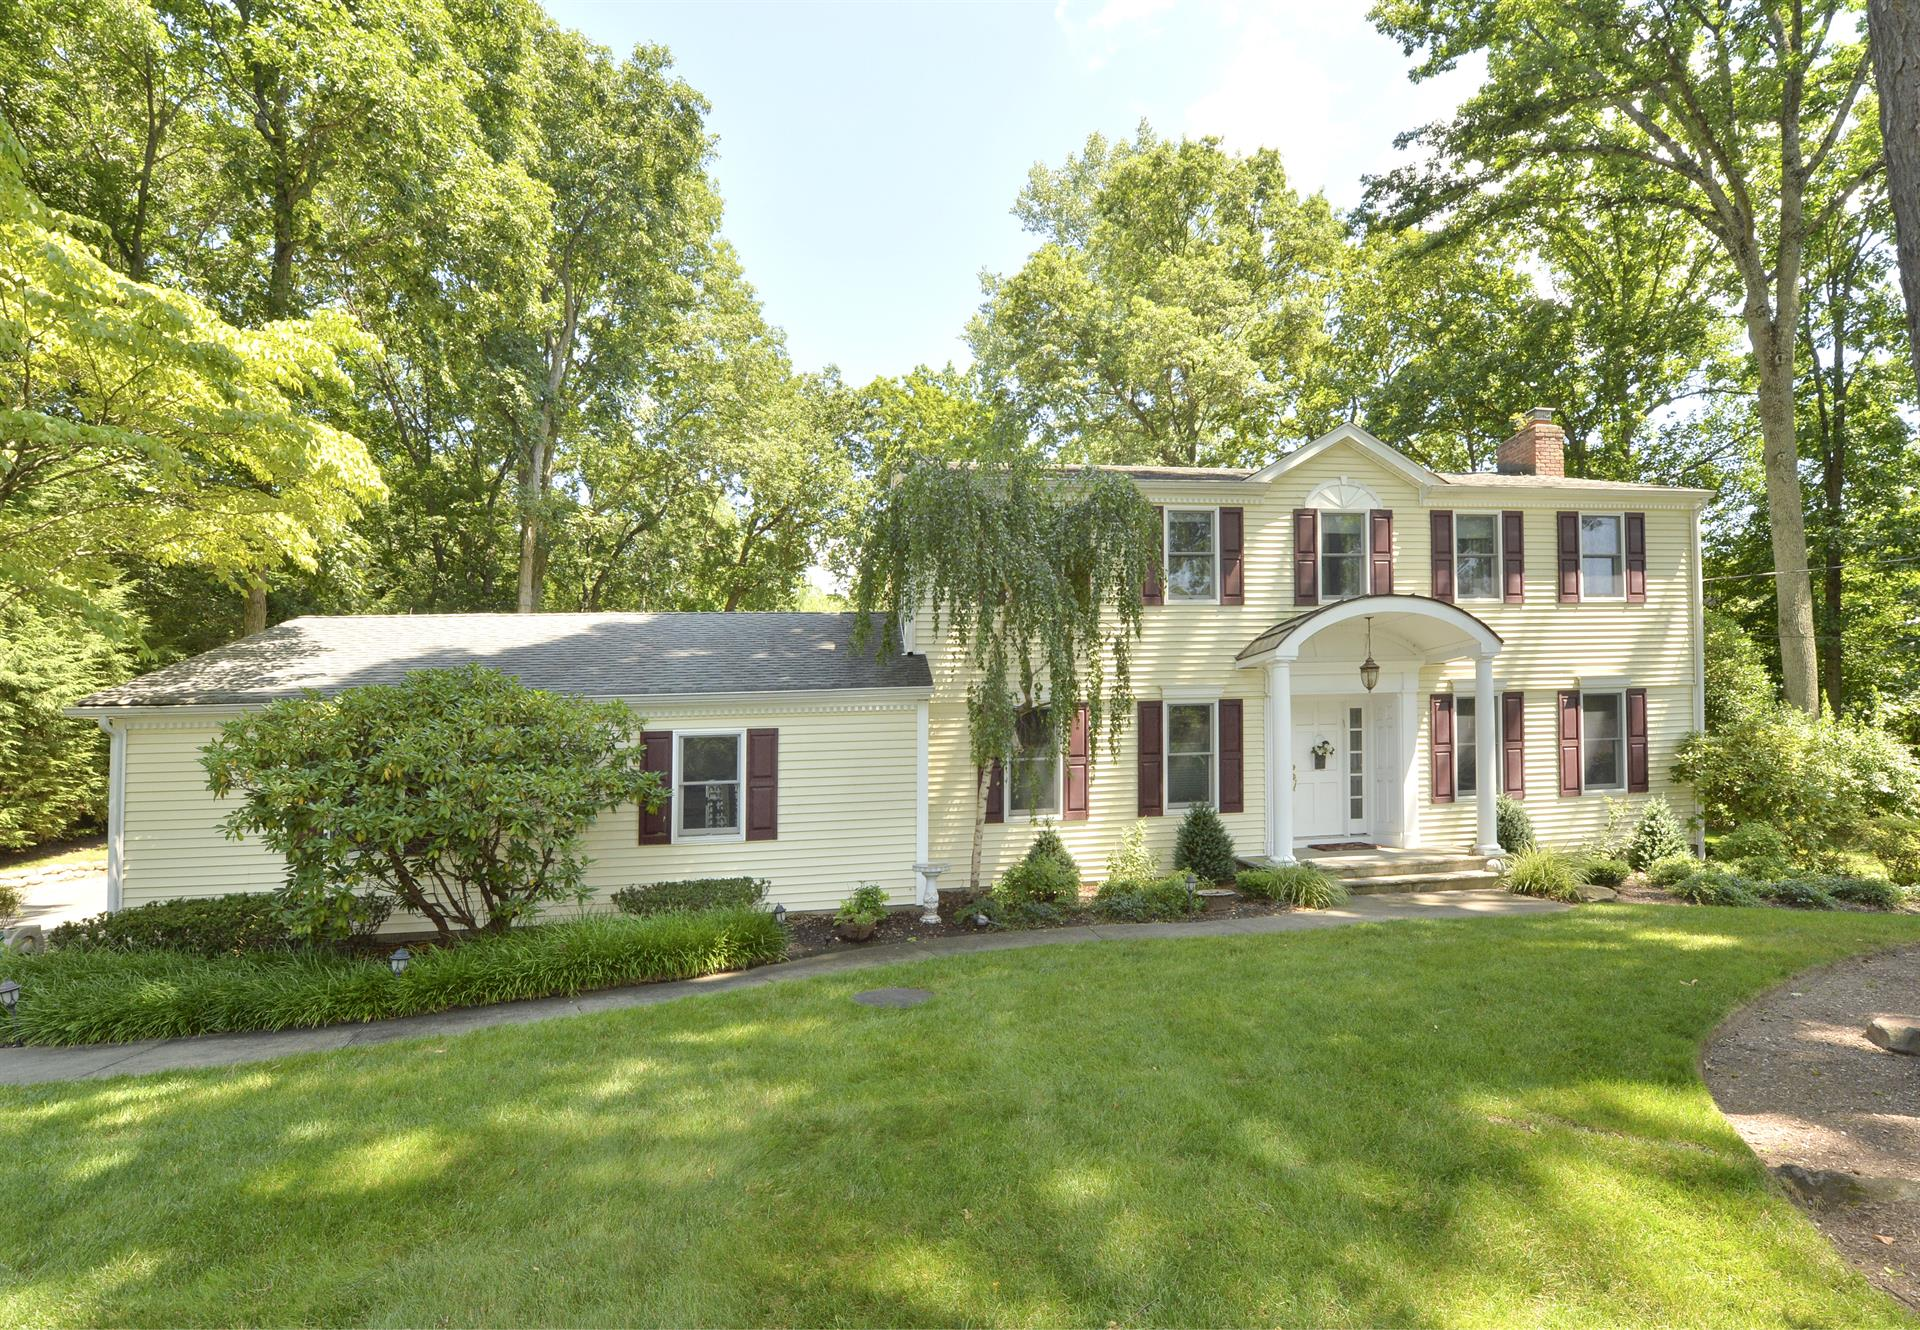 Upper Saddle River - Real Estate and Apartments for Sale ...